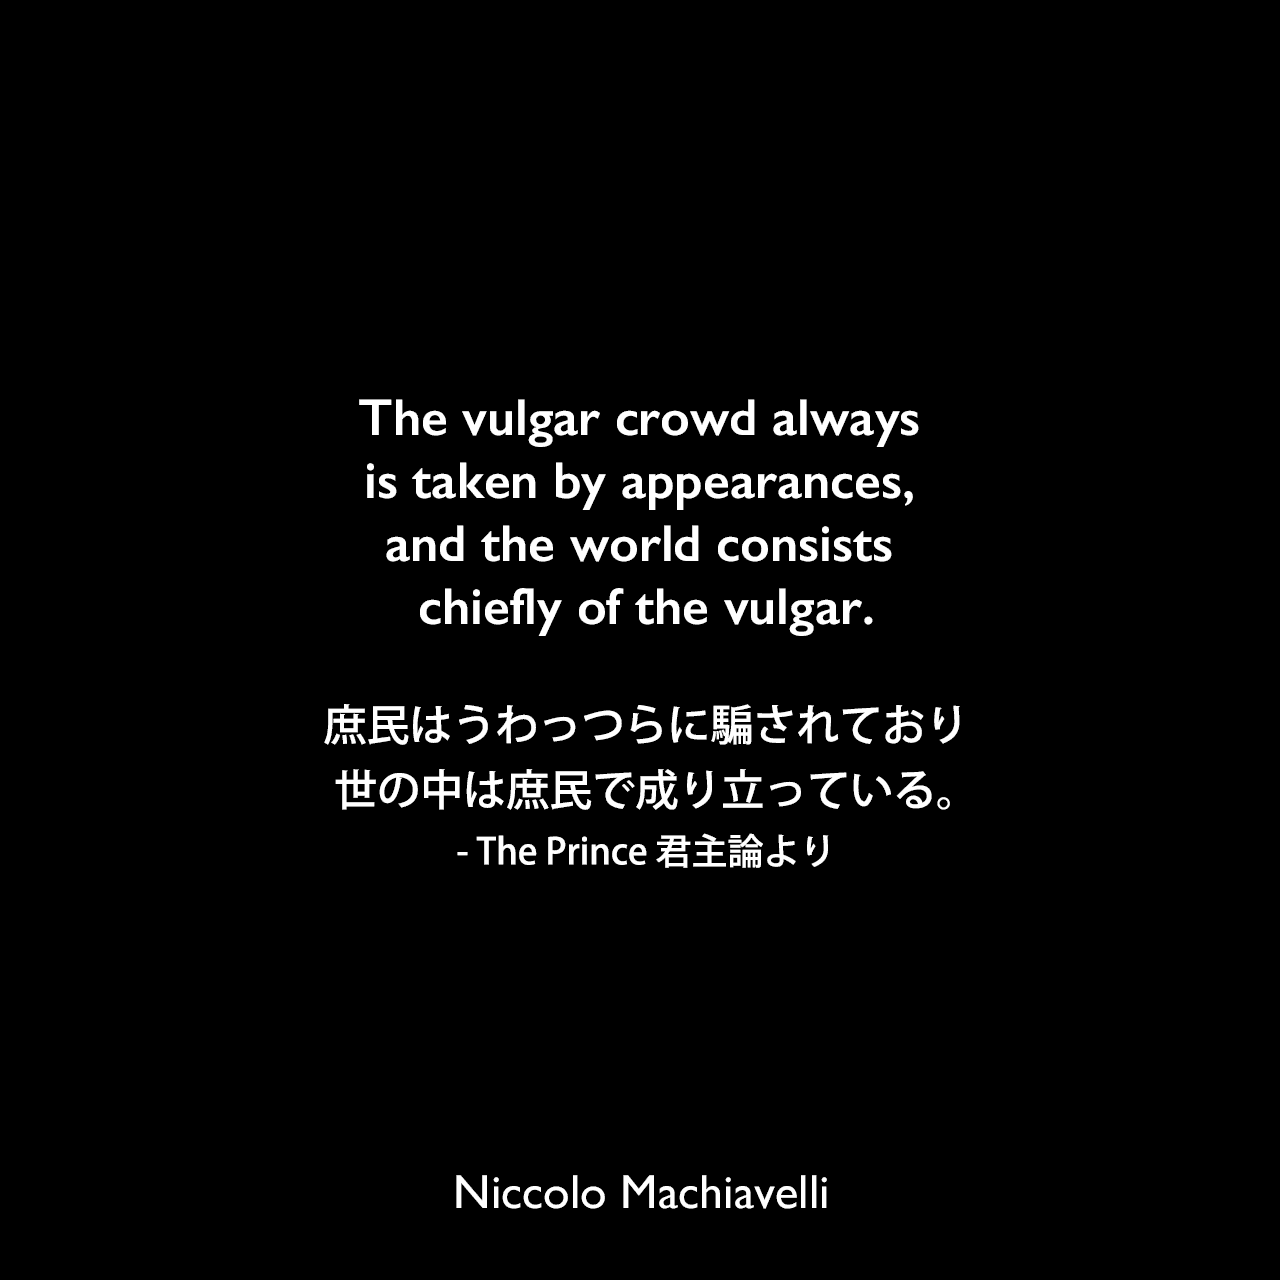 The vulgar crowd always is taken by appearances, and the world consists chiefly of the vulgar.庶民はうわっつらに騙されており、世の中は庶民で成り立っている。- The Prince 君主論よりNiccolo Machiavelli